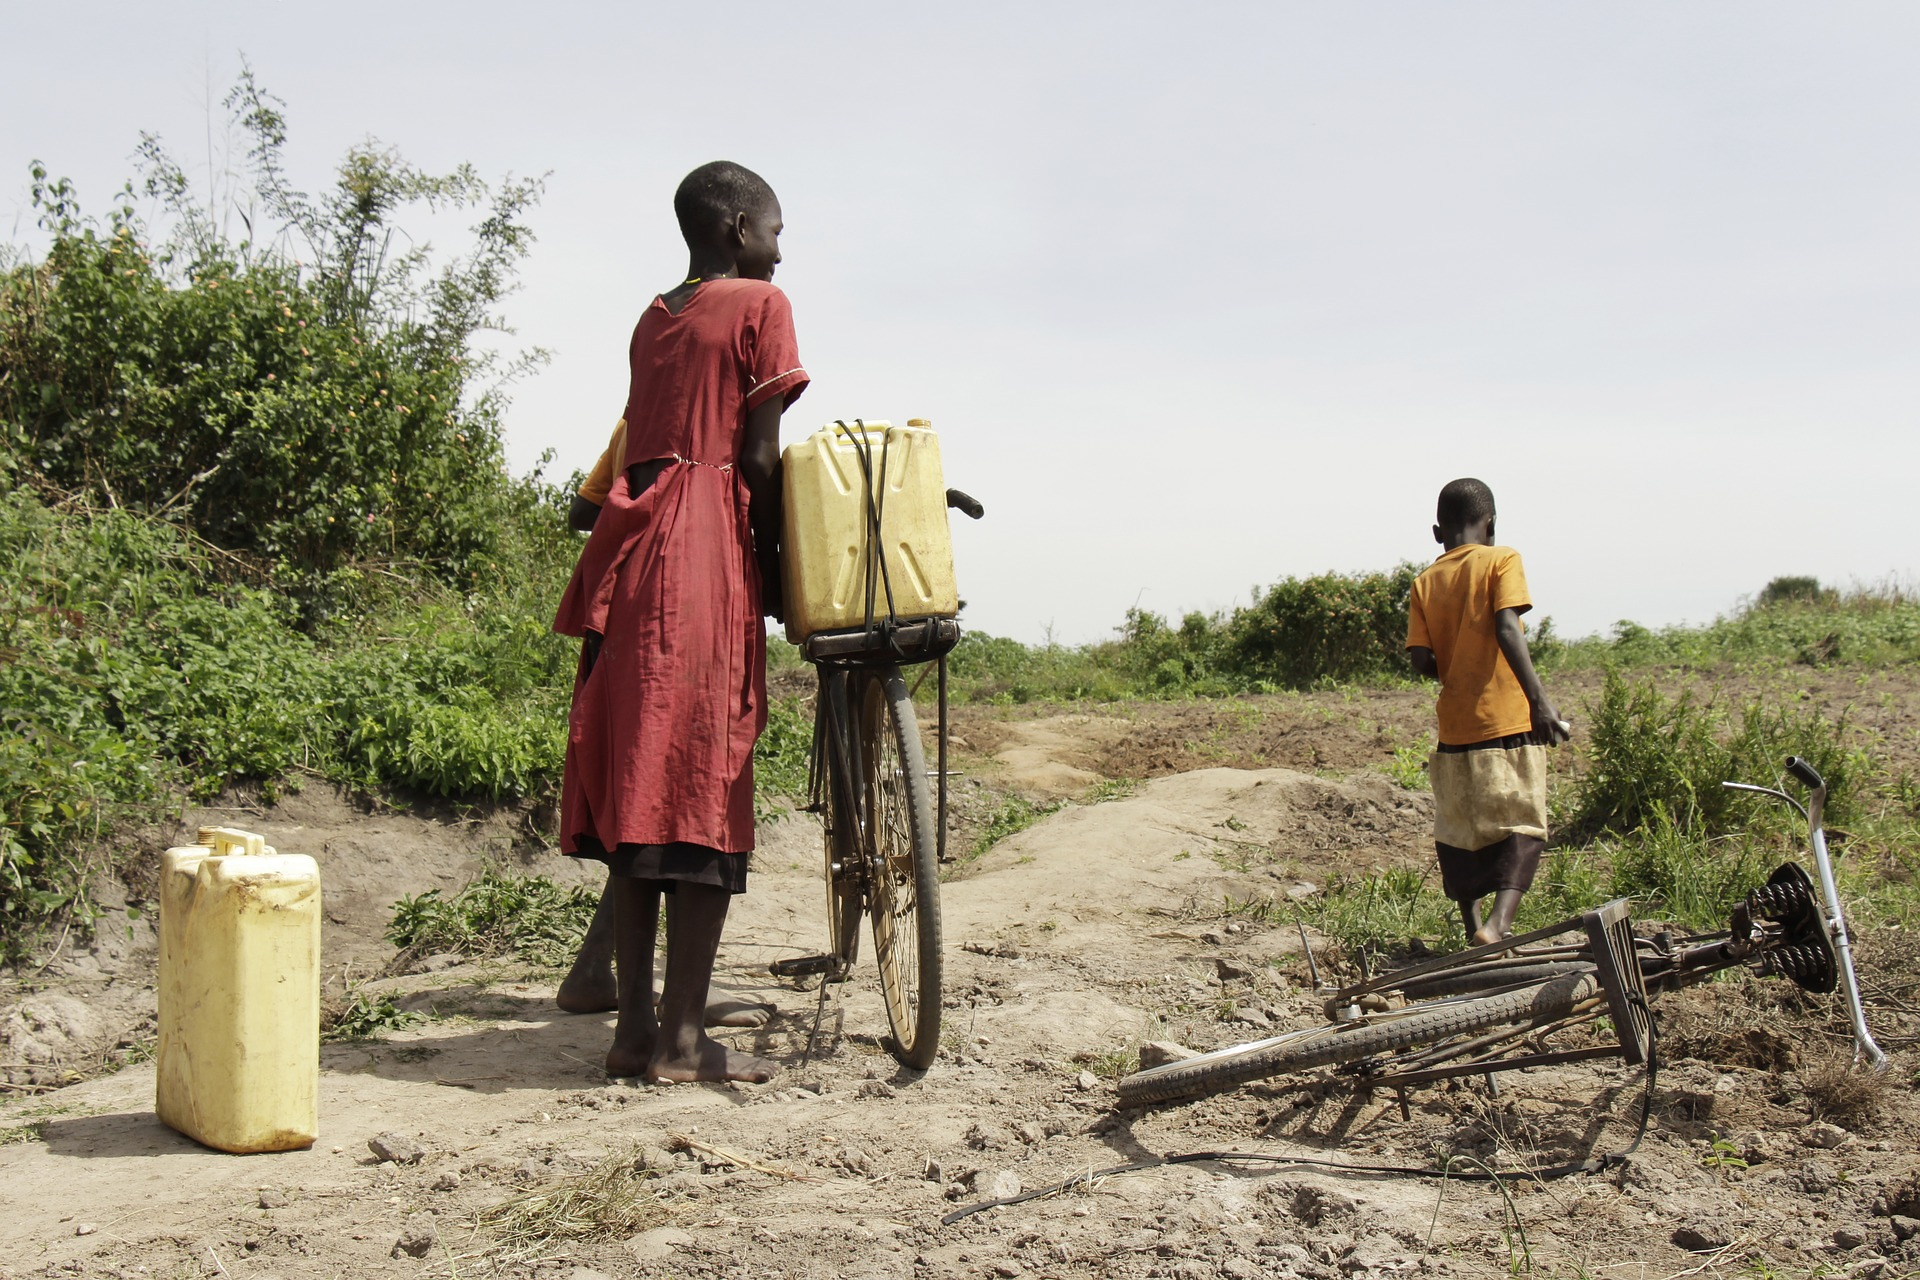 Natural beauties of Africa - Drought and lack of drinking water / Pixabay